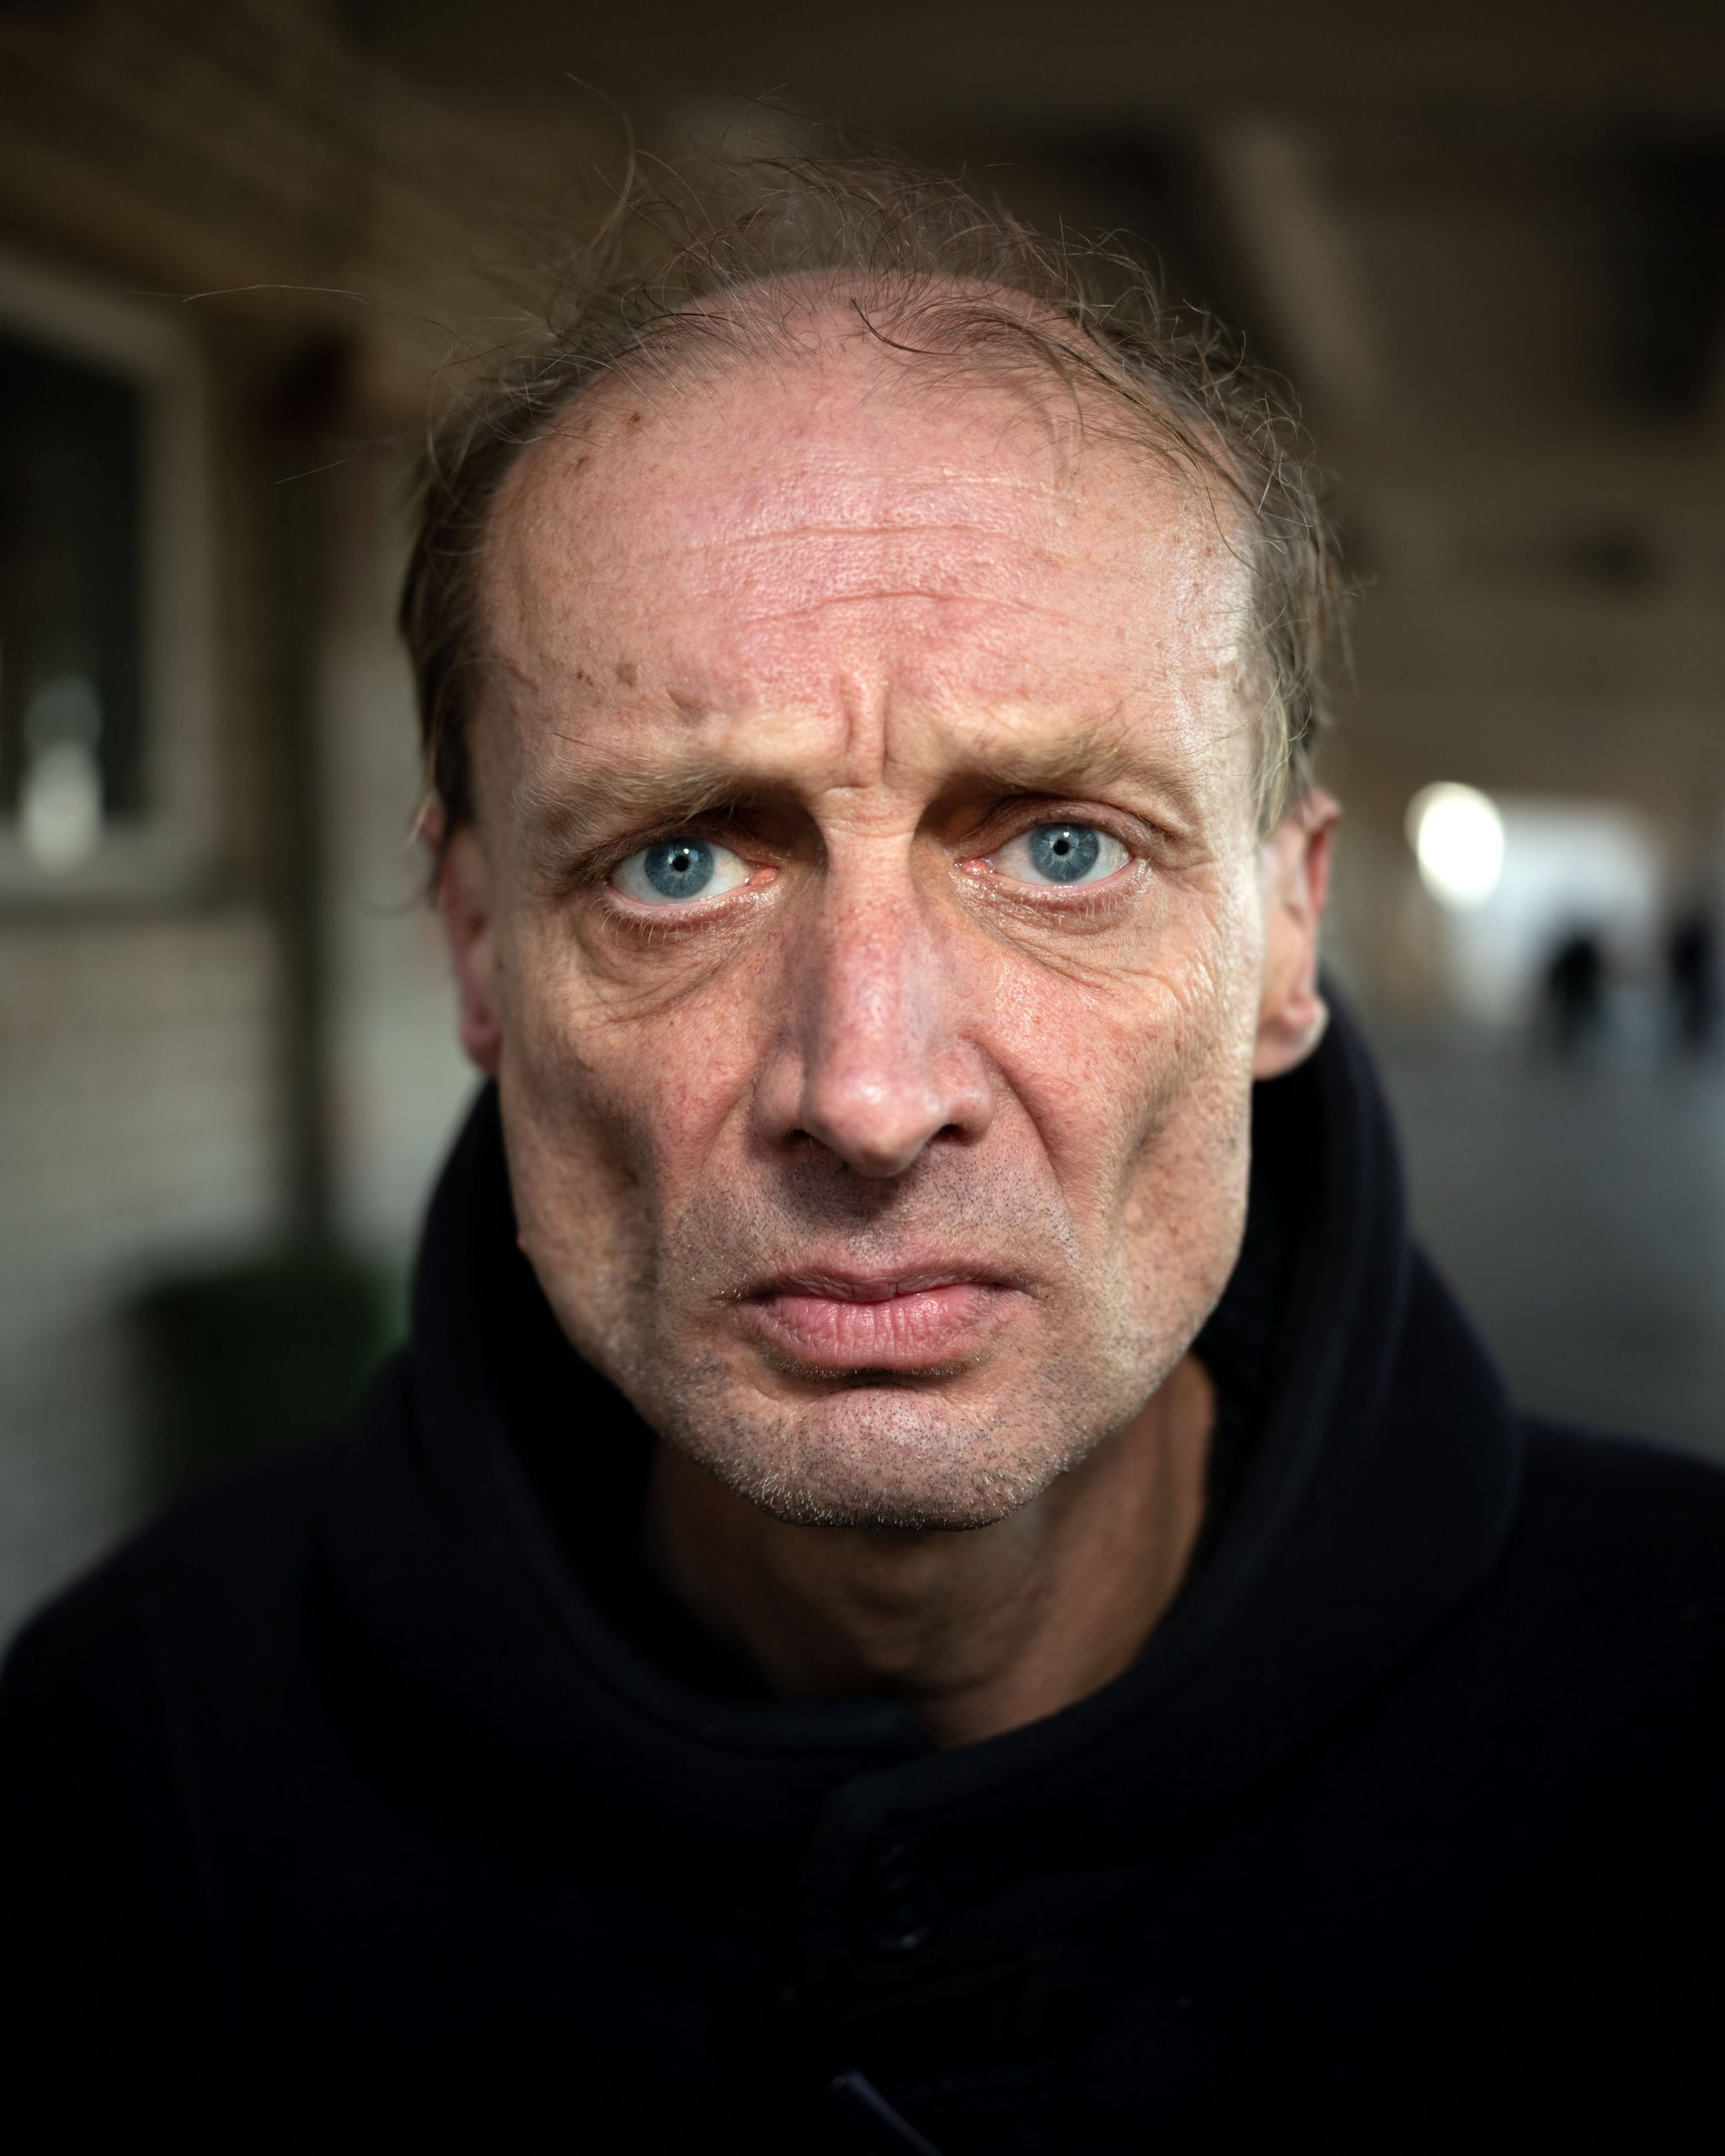 THE EUROPEANS -Arnold van Bruggen & Rob Hornstra the south west collective of photography ltd close up portrait of man with blue eyes